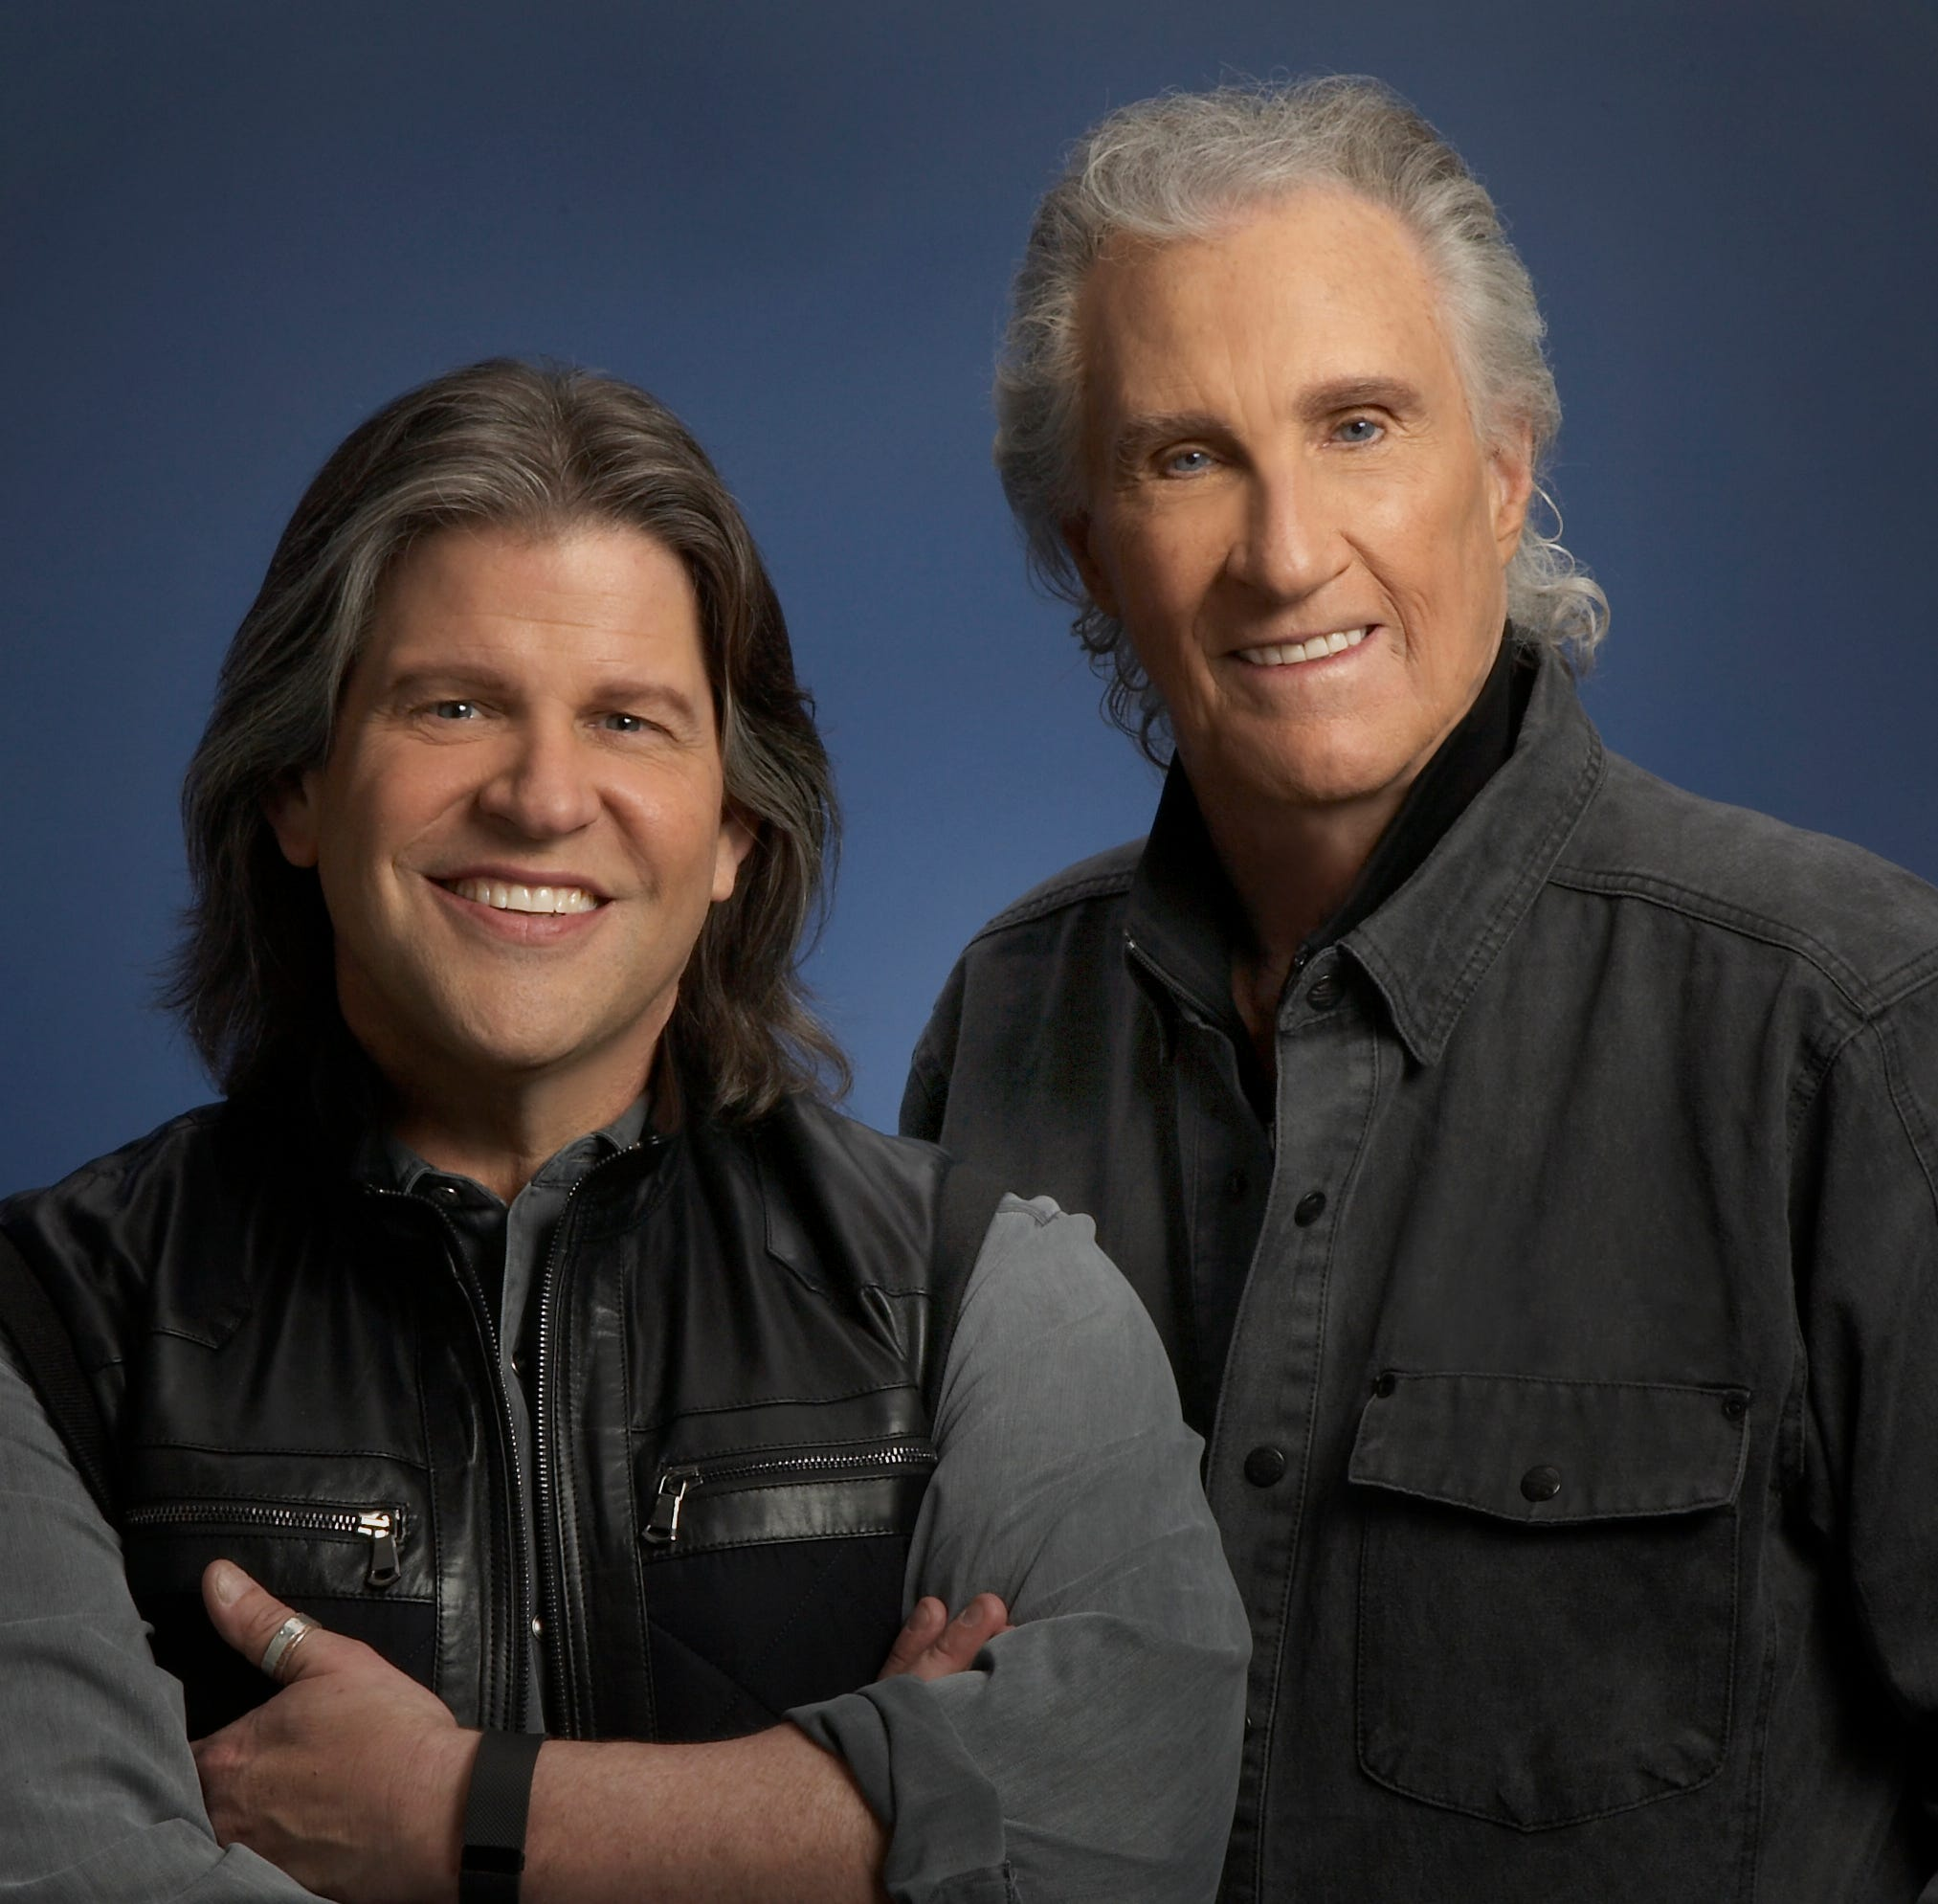 The Righteous Brothers bring that lovin' feeling to Fort Myers